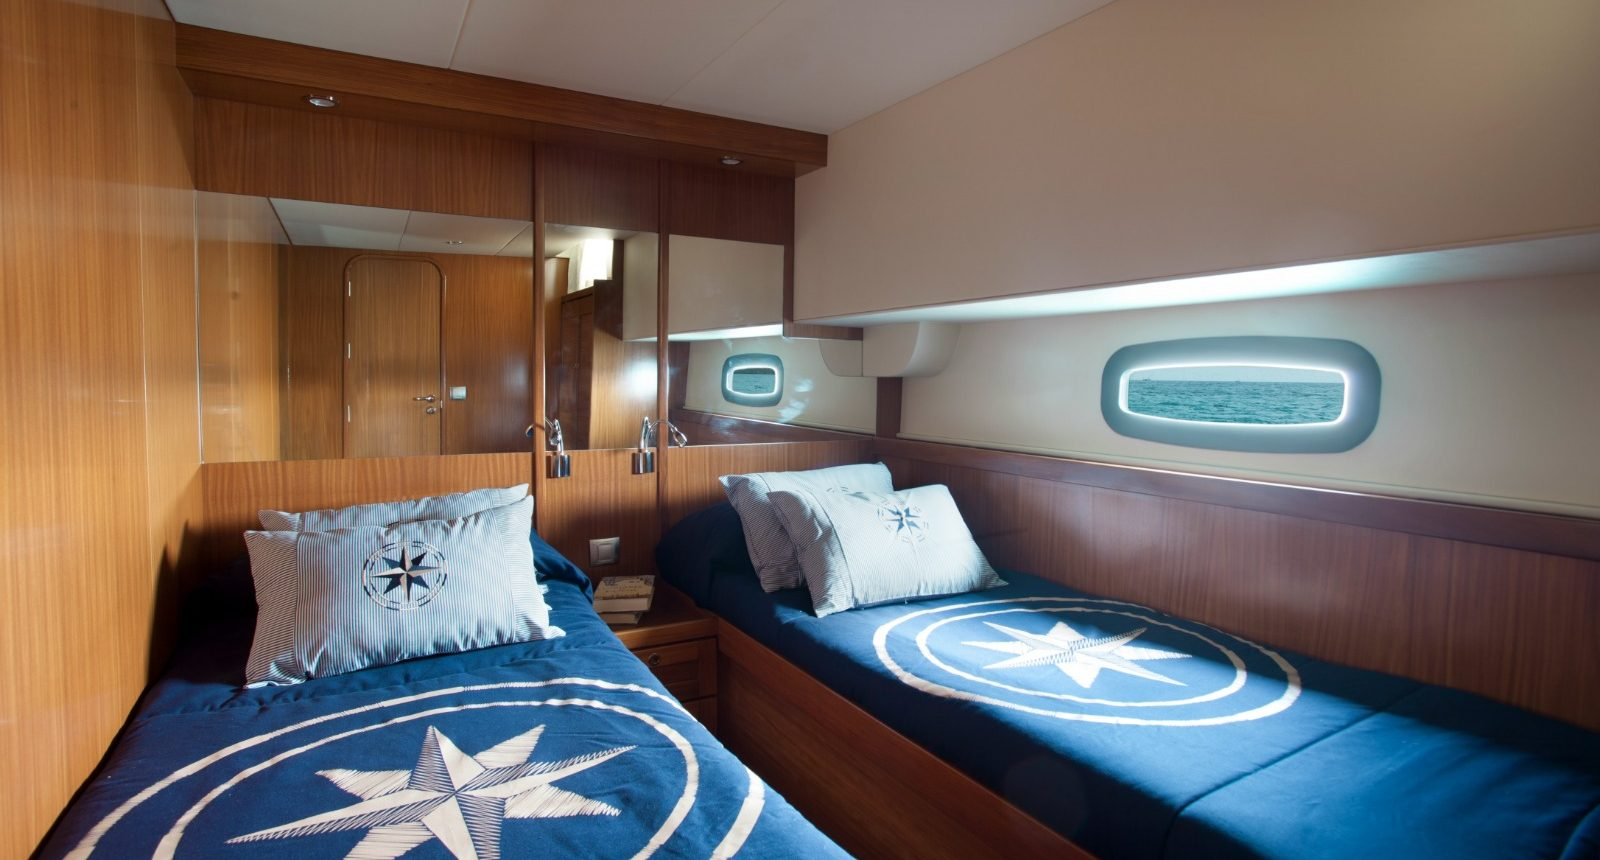 Minorca Islander 54 yacht for sale - guest cabin